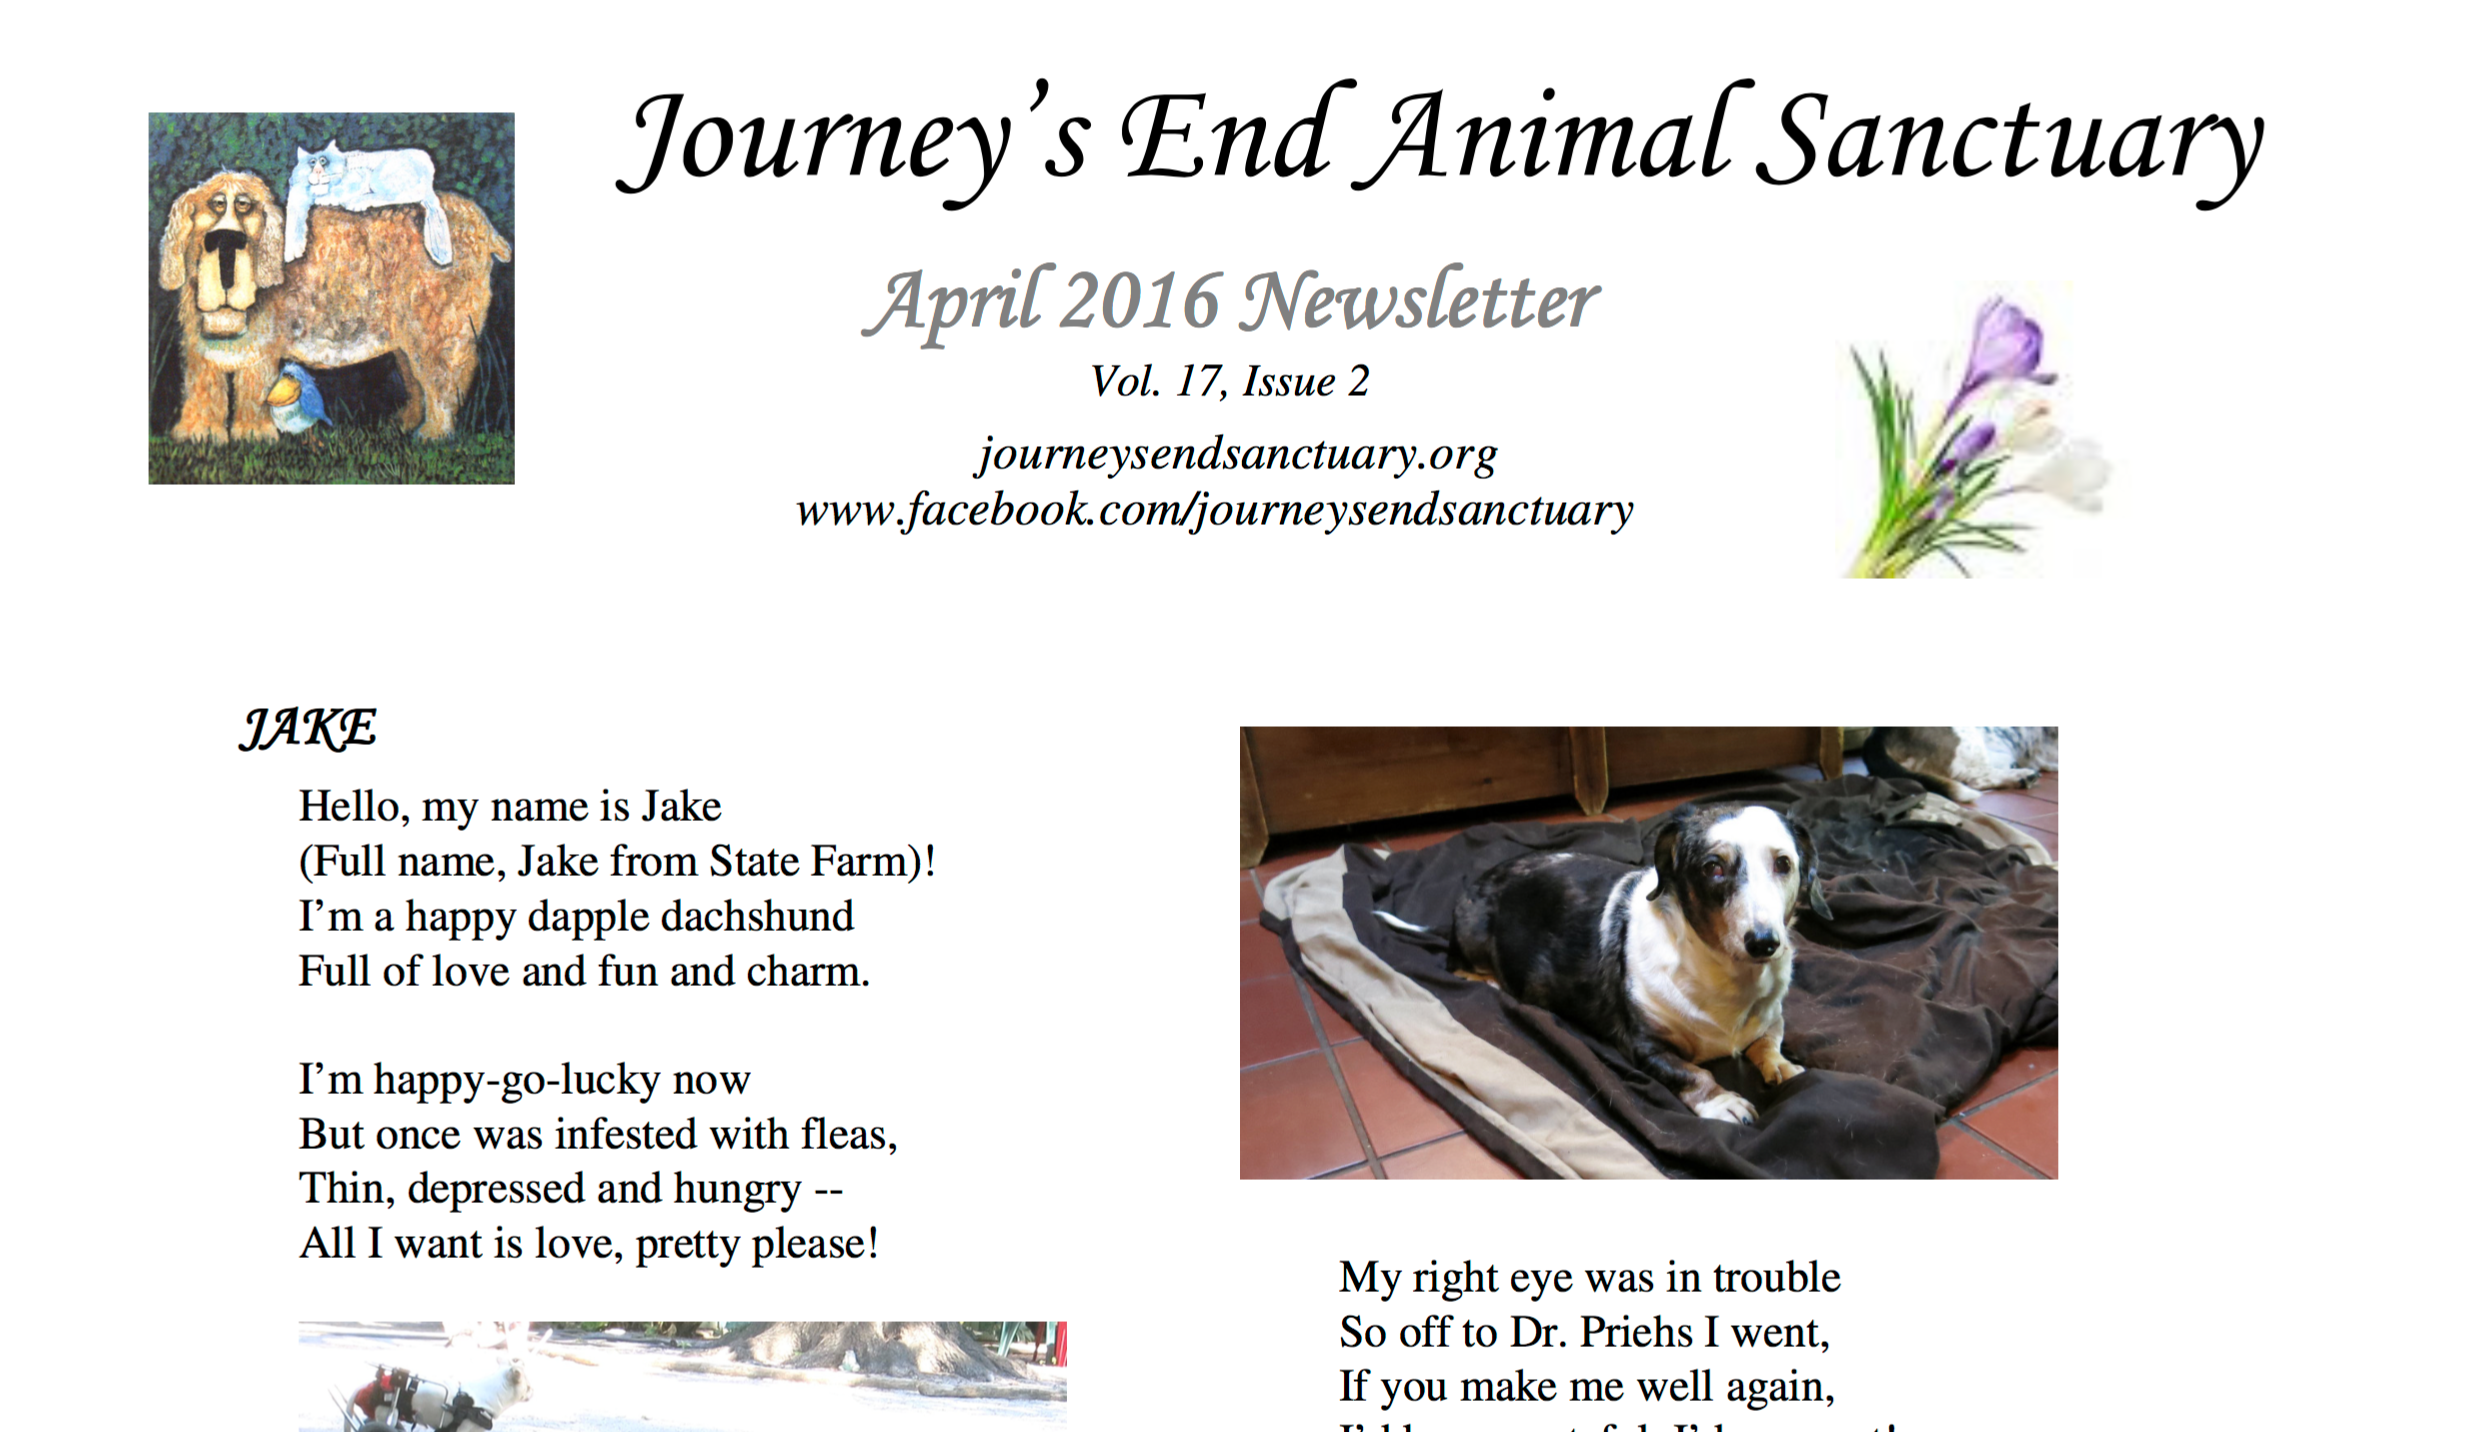 Snapshot of Newsletter for Journey's End